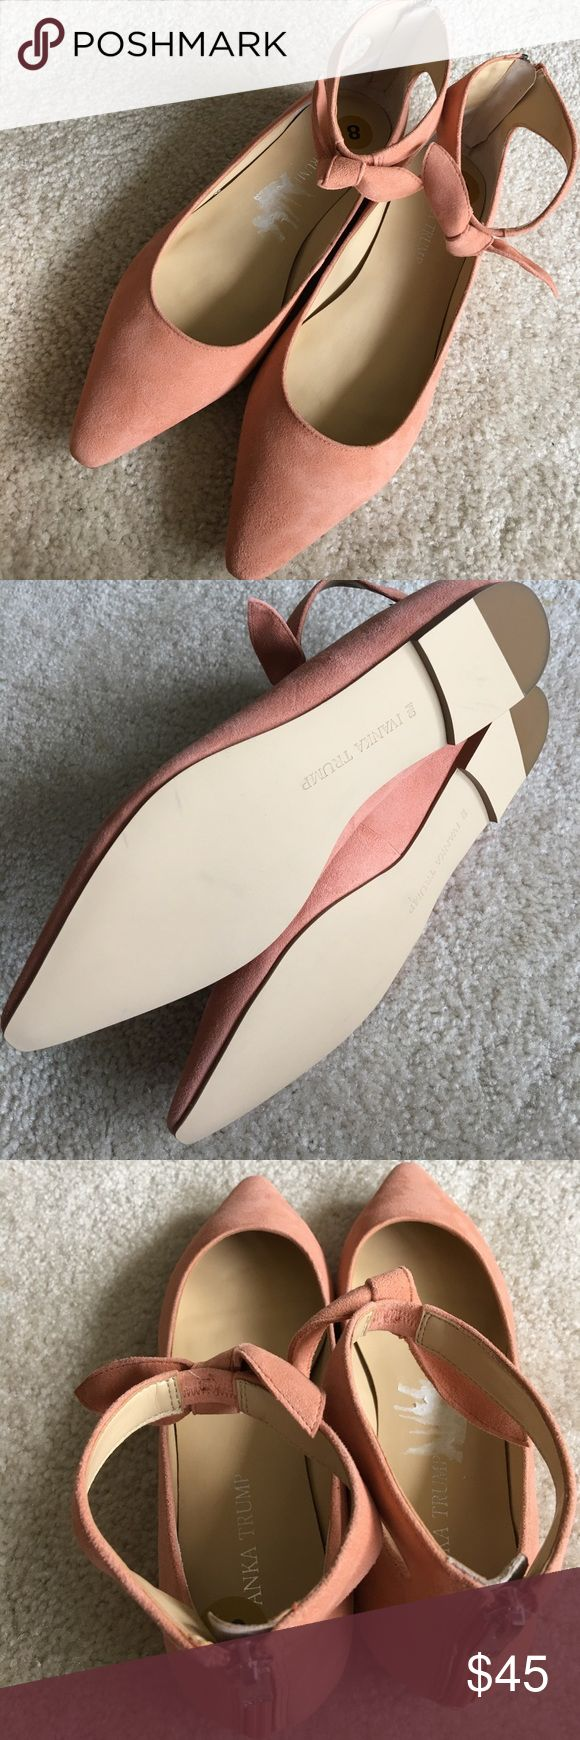 Ivanka Trump, Tramory Suede Ankle Strap size 8 Beautiful pointed flats for everyday wear, brand new, never worn, no box Ivanka Trump Shoes Flats & Loafers